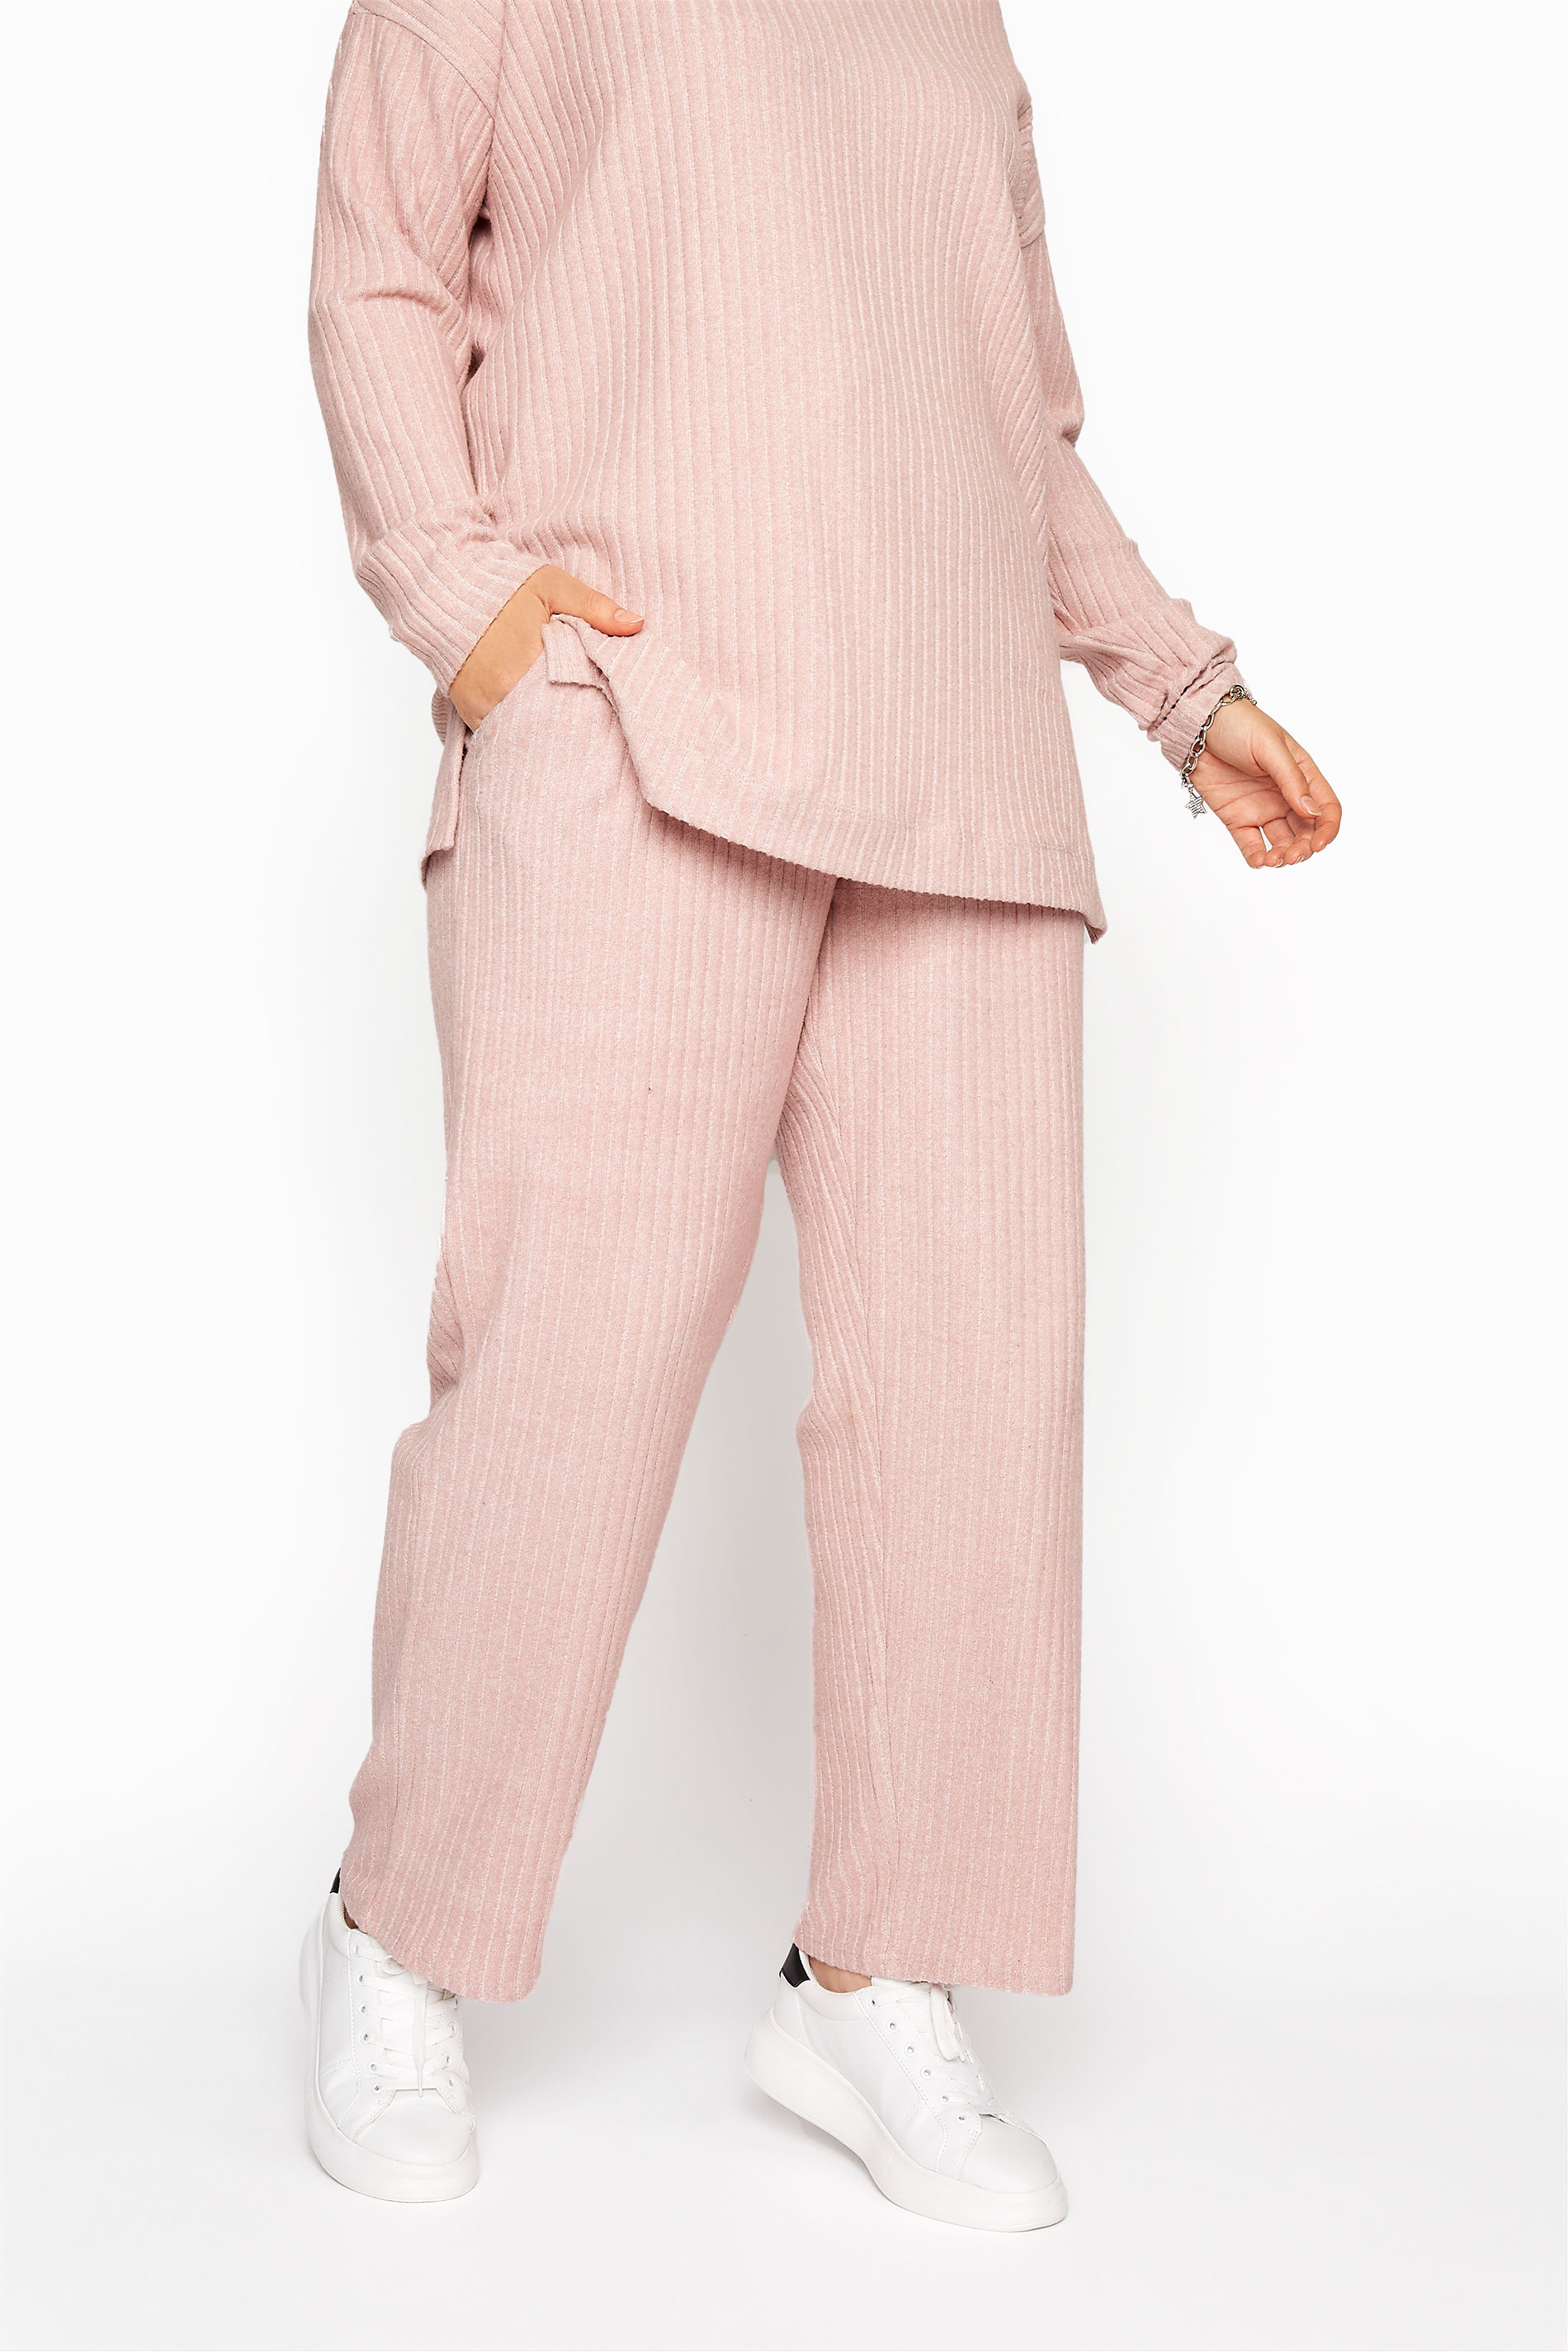 Pink Ribbed Soft Touch Trousers_B.jpg